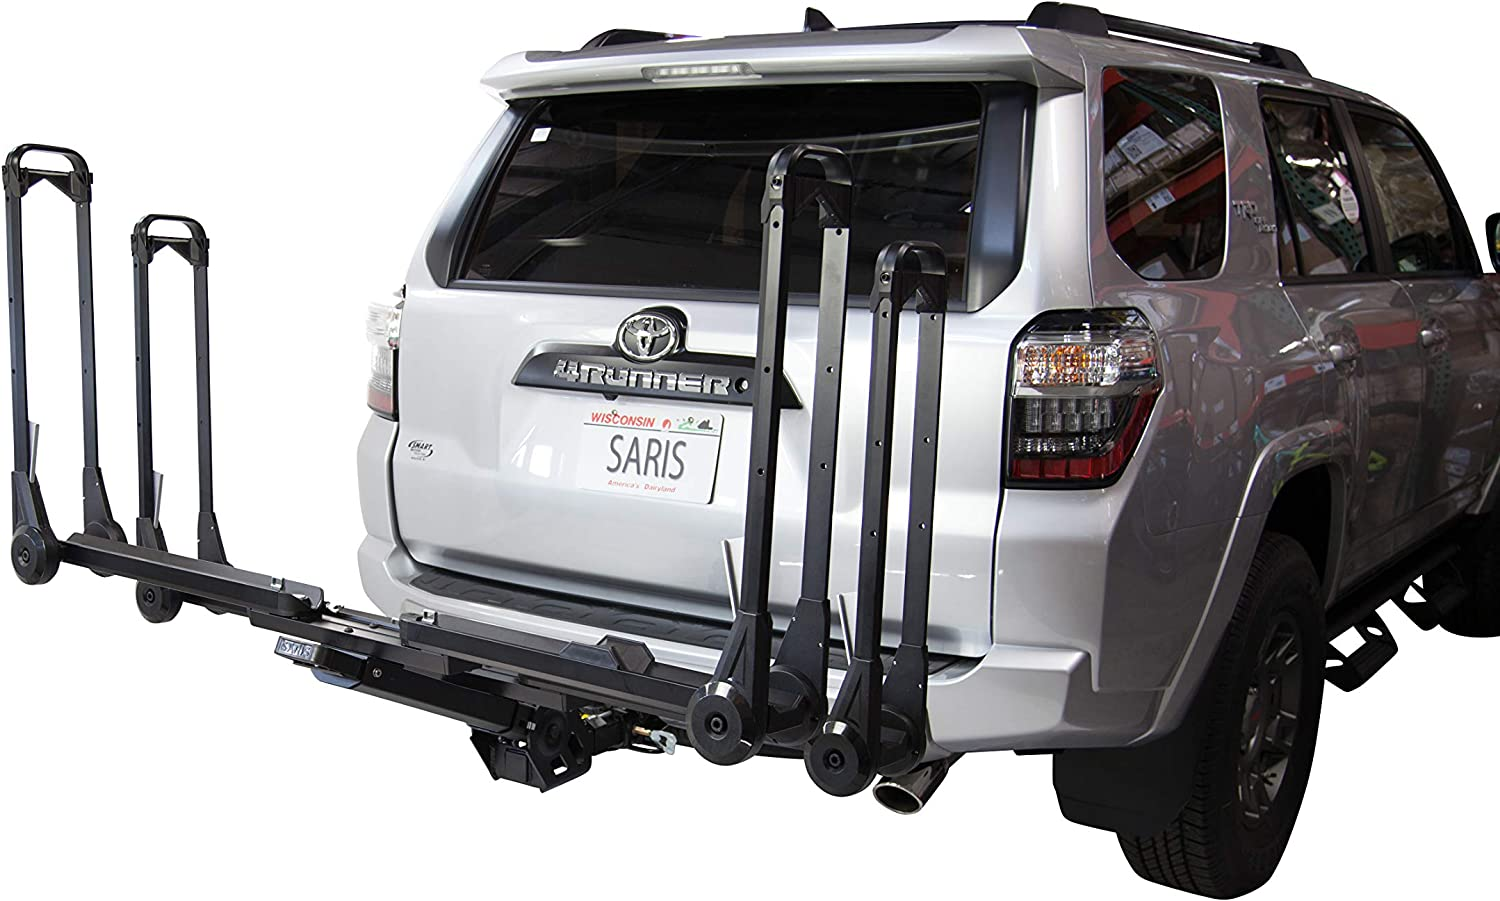 Saris MTR Bike Hitch Car Rack, Hitch Bicycle Rack with Add-On Extension Options, 1-4 Bike Carrier